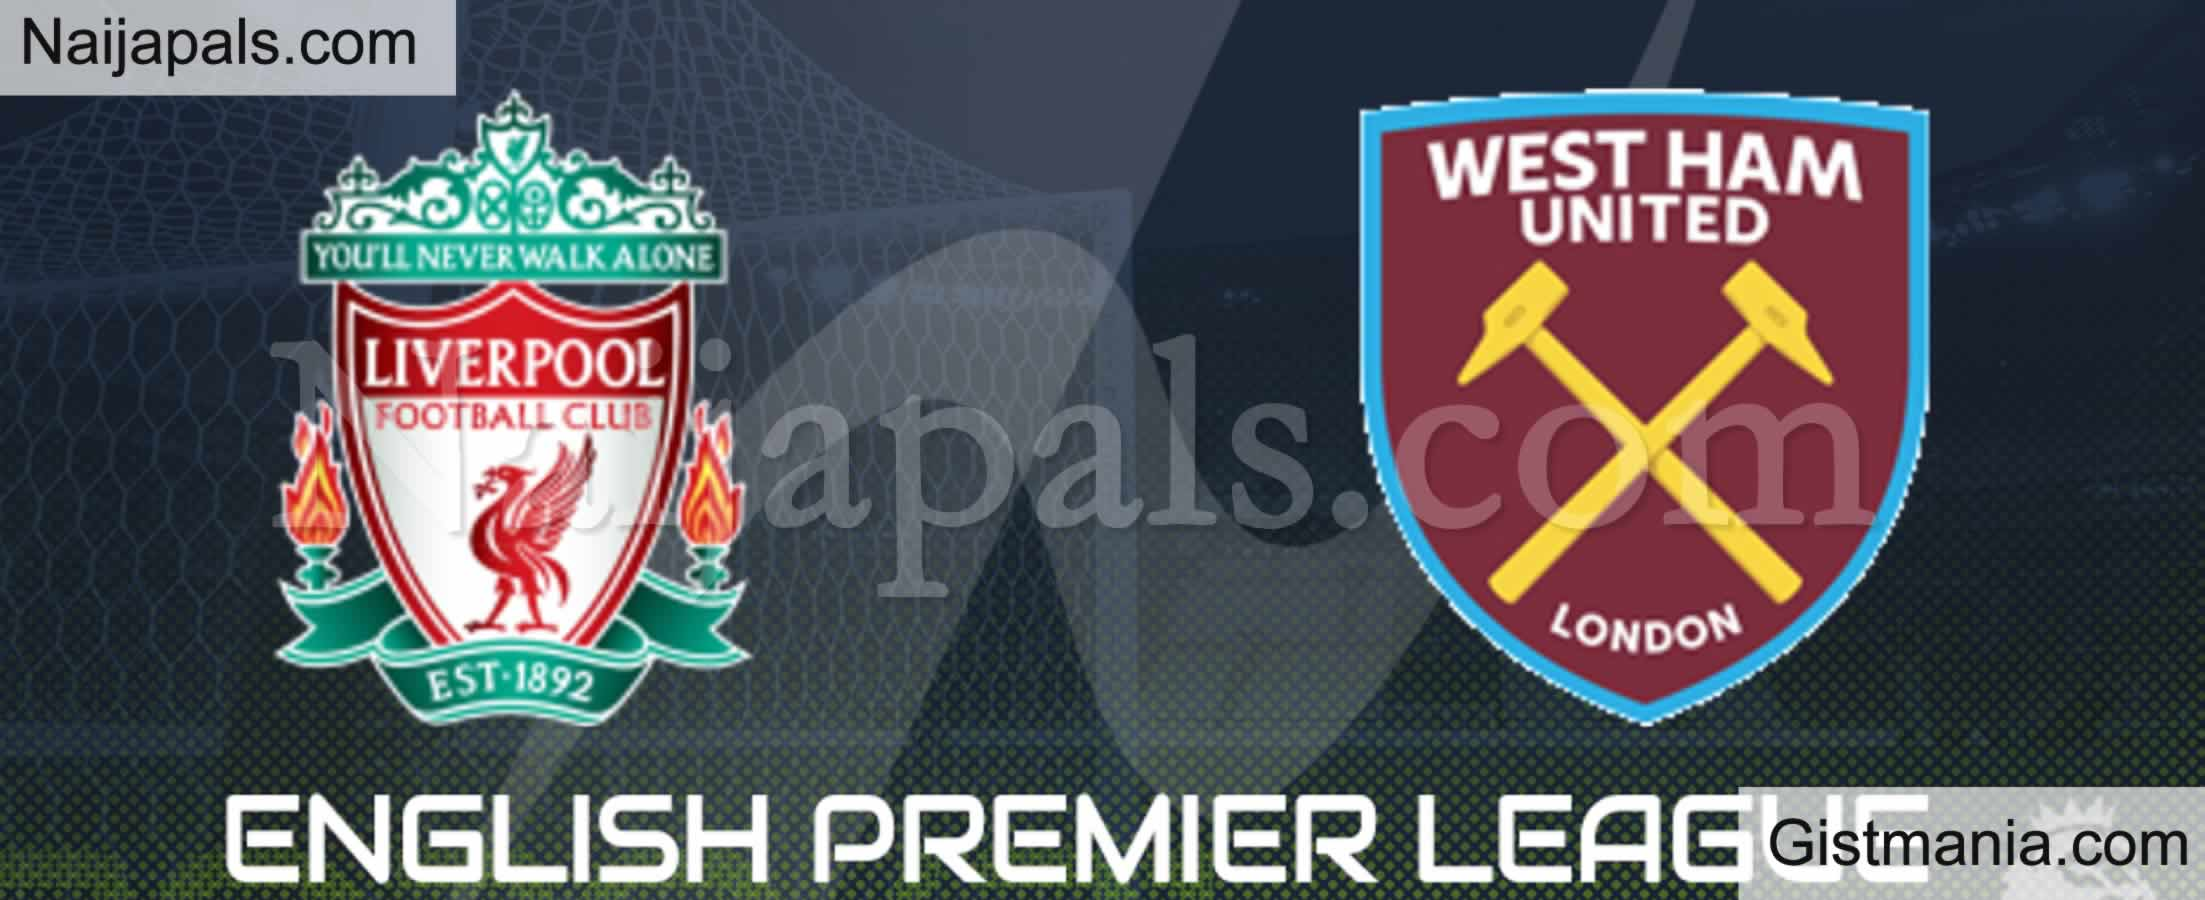 <img alt='.' class='lazyload' data-src='https://img.gistmania.com/emot/soccer.gif' /> <b>Liverpool v West Ham : English Premier League Match, Team News, Goal Scorers and Stats</b>